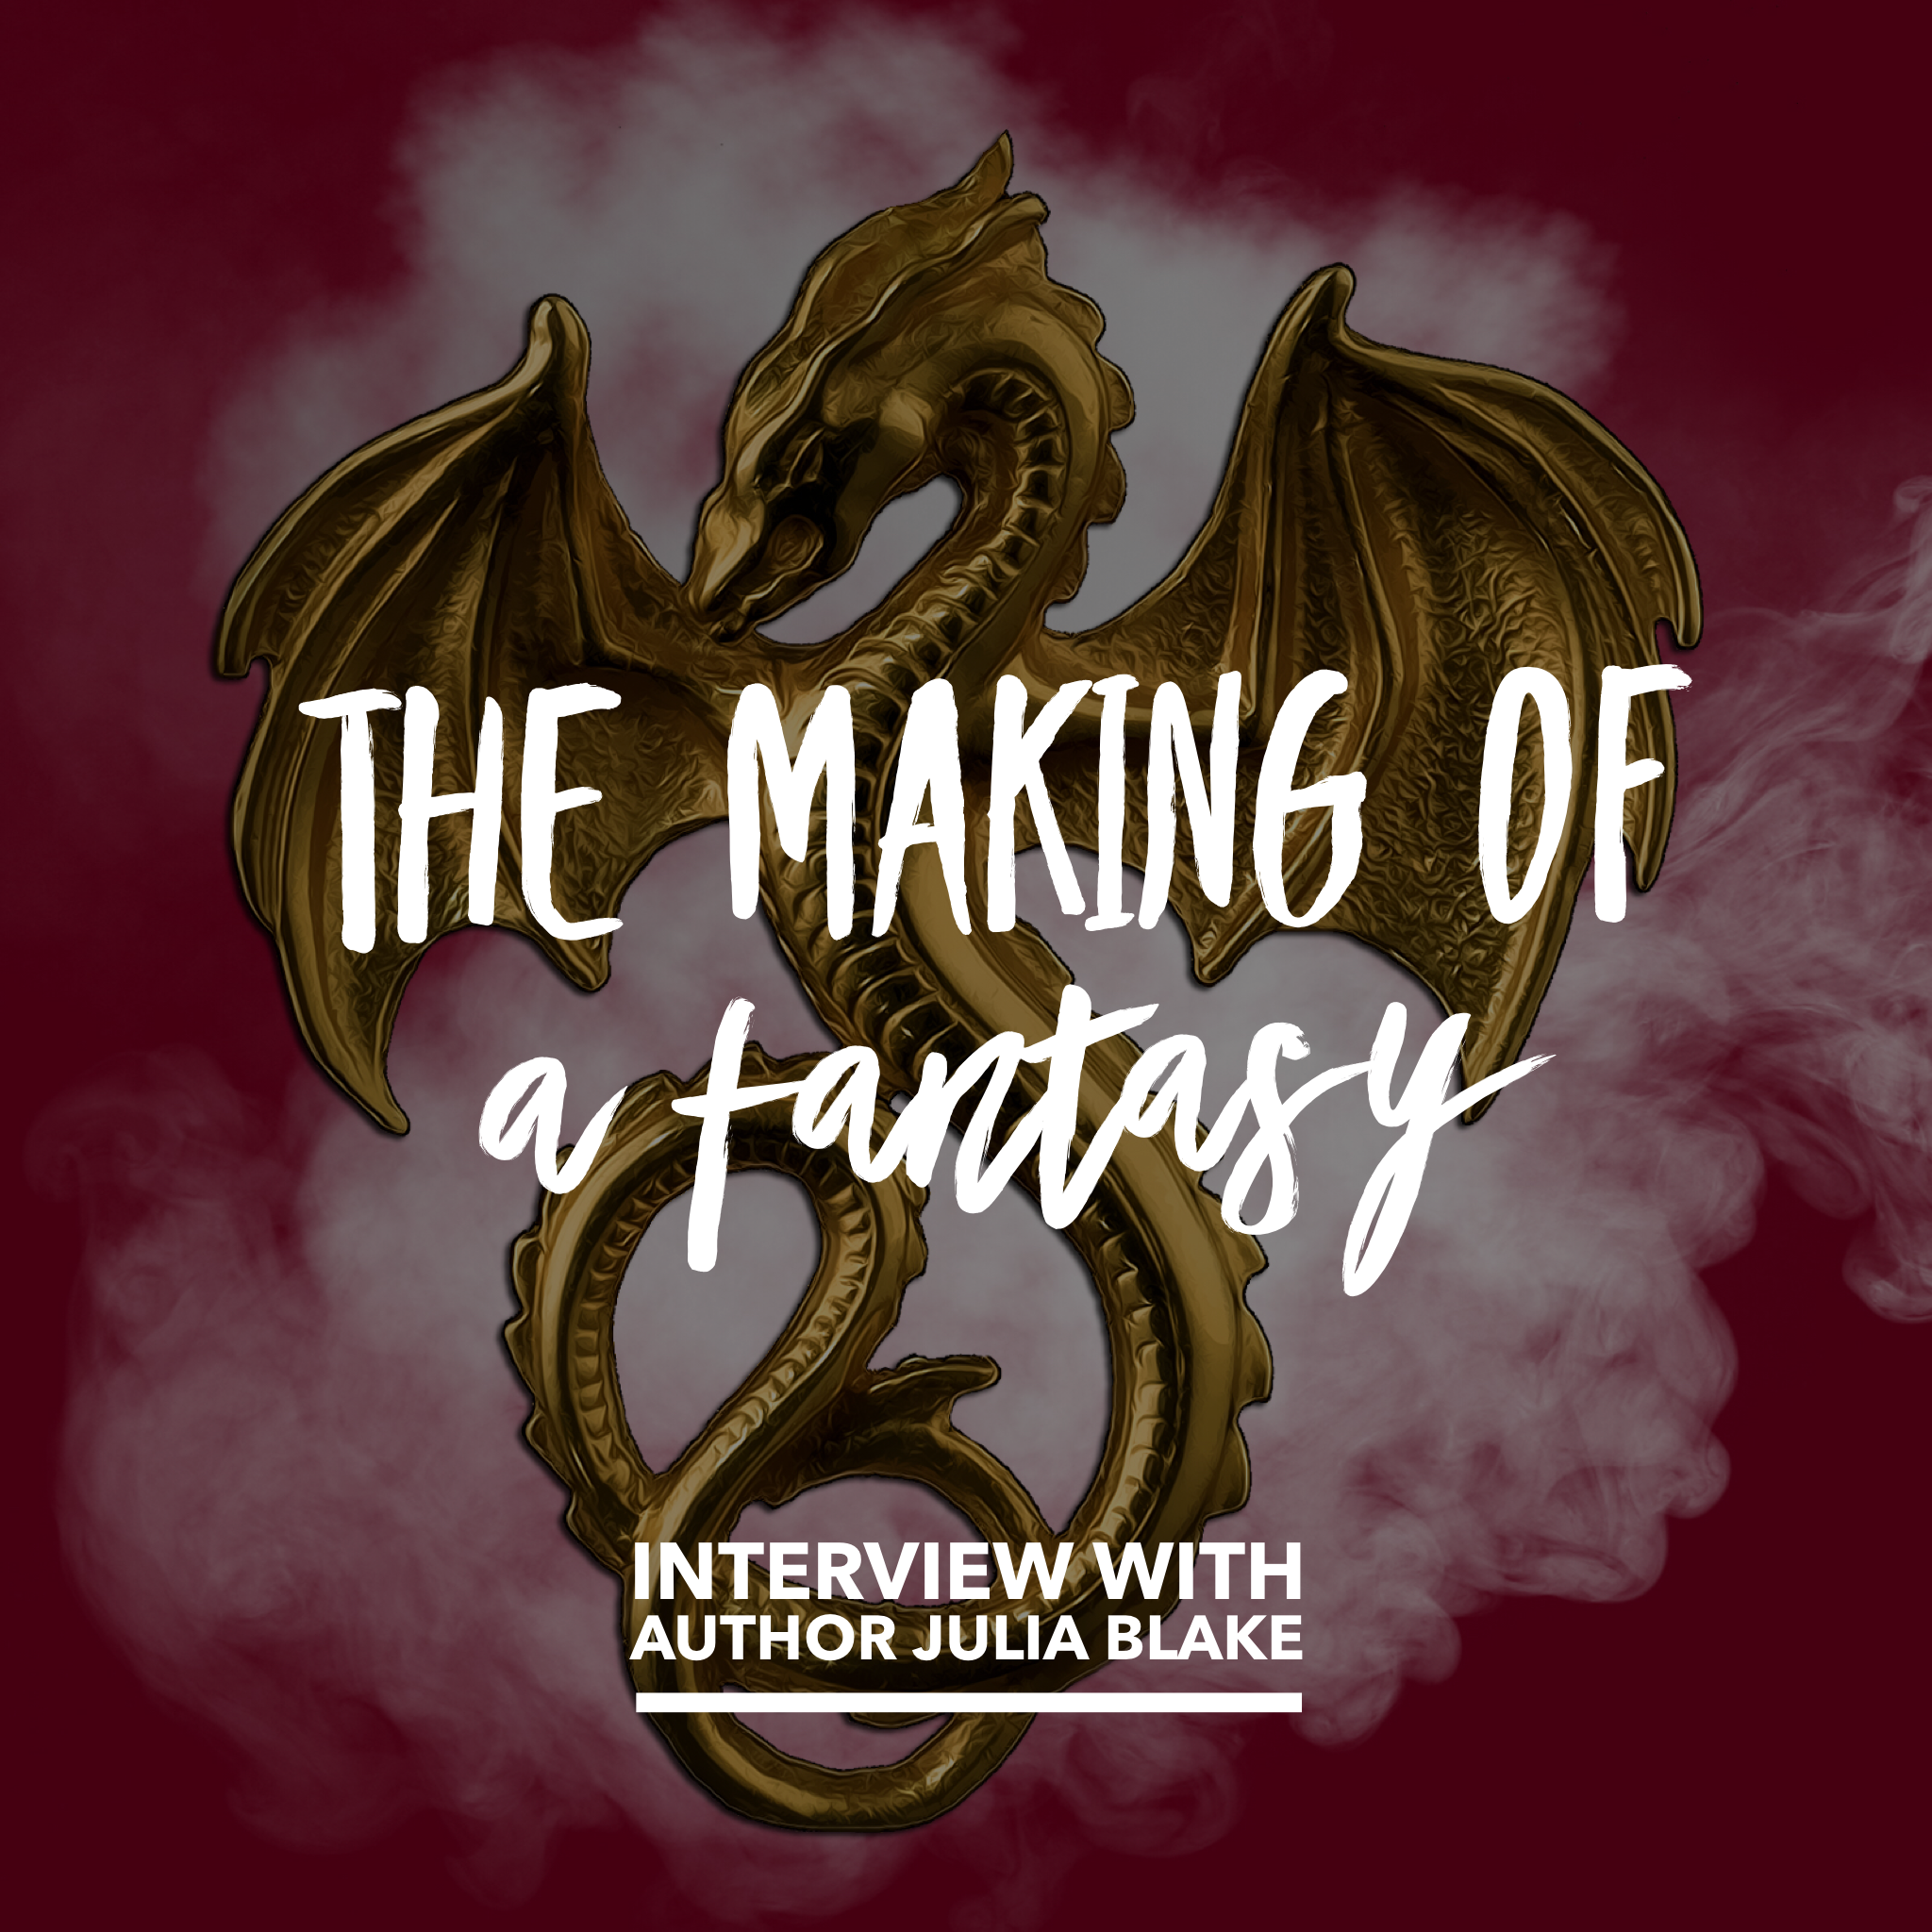 The Making of a Fantasy with Author Julia Blake